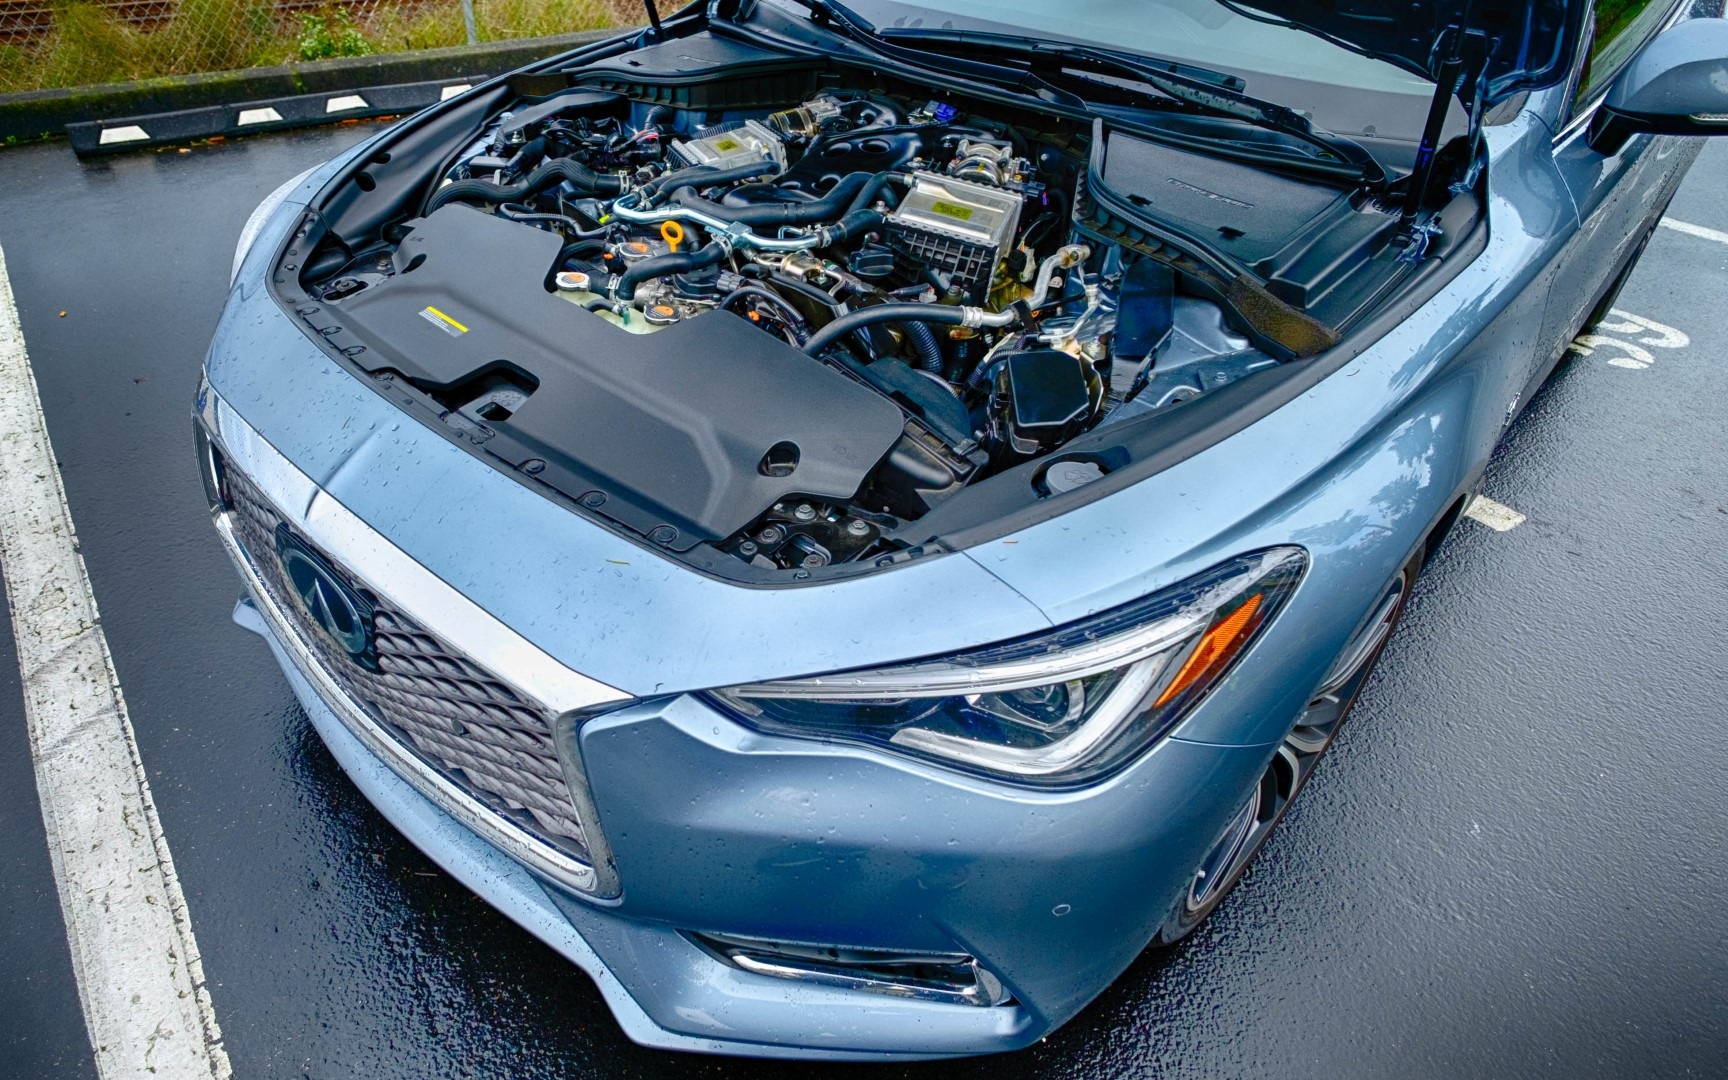 2016 Infiniti Q50 3.0 T Premium >> 2017 Infiniti Q60 3.0t Premium is underrated, makes 310 hp at the wheels | | Automotive Industry ...